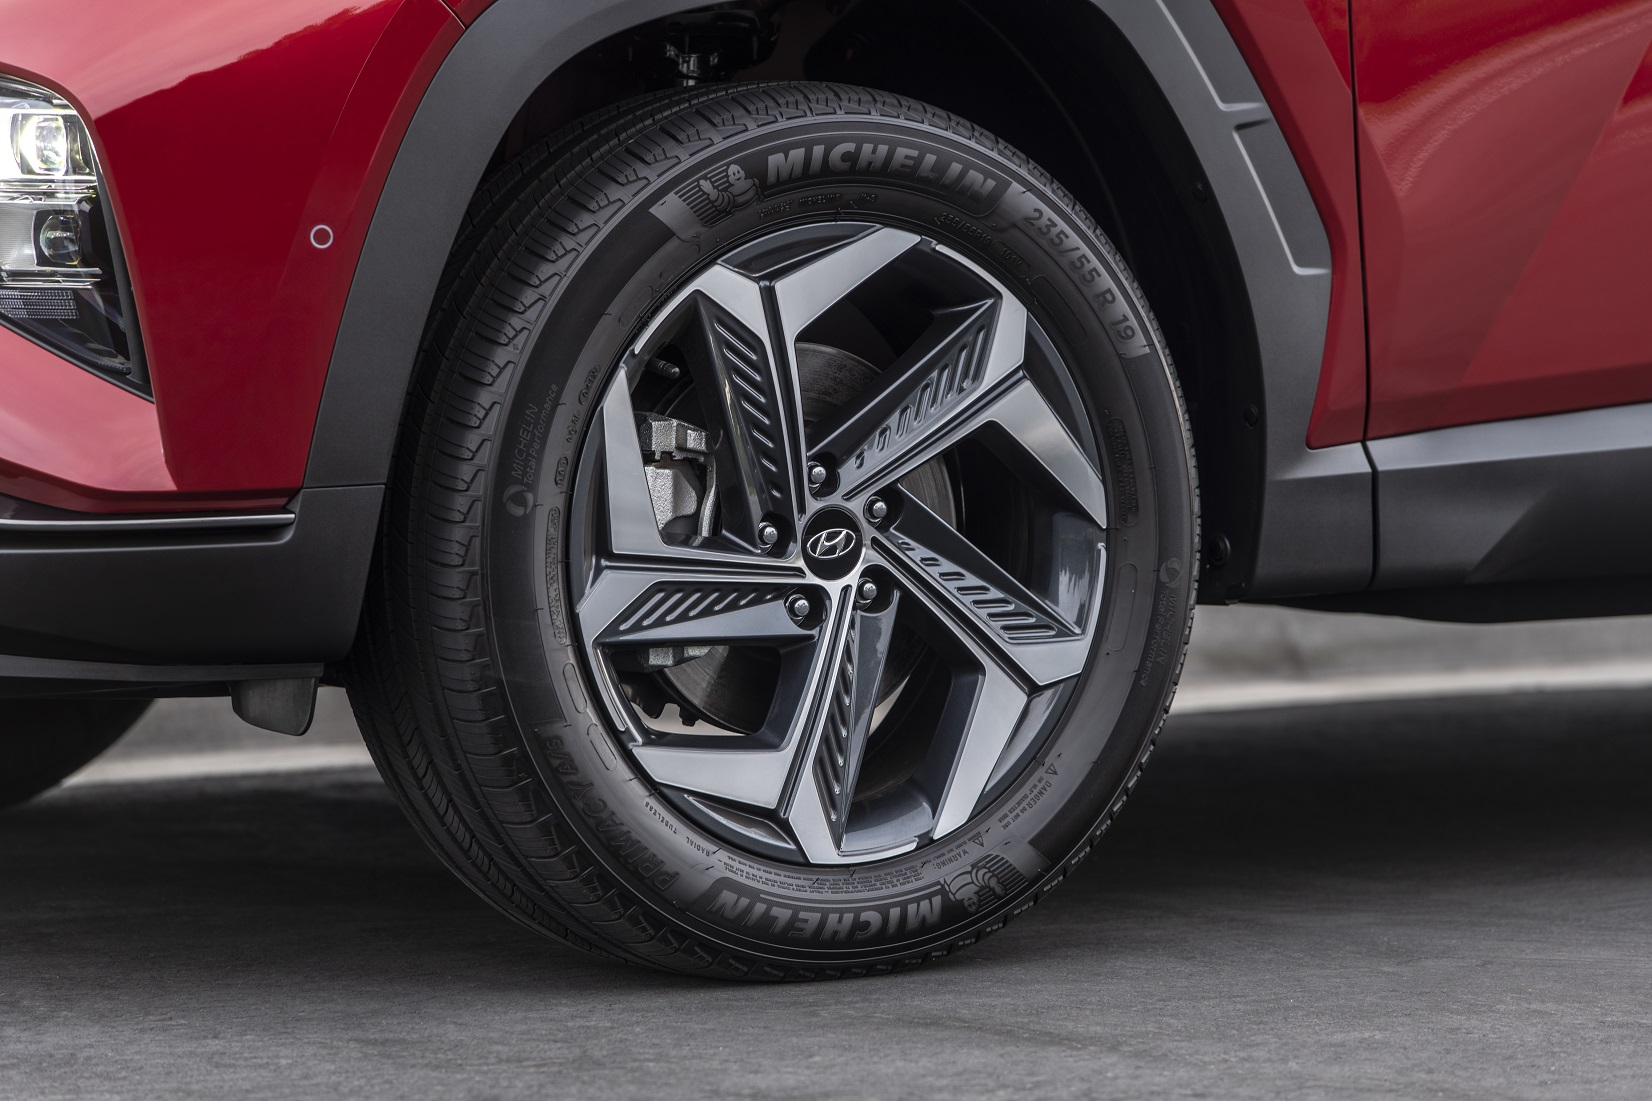 The 19-inch tire-and-wheel package for the Tucson Hybrid